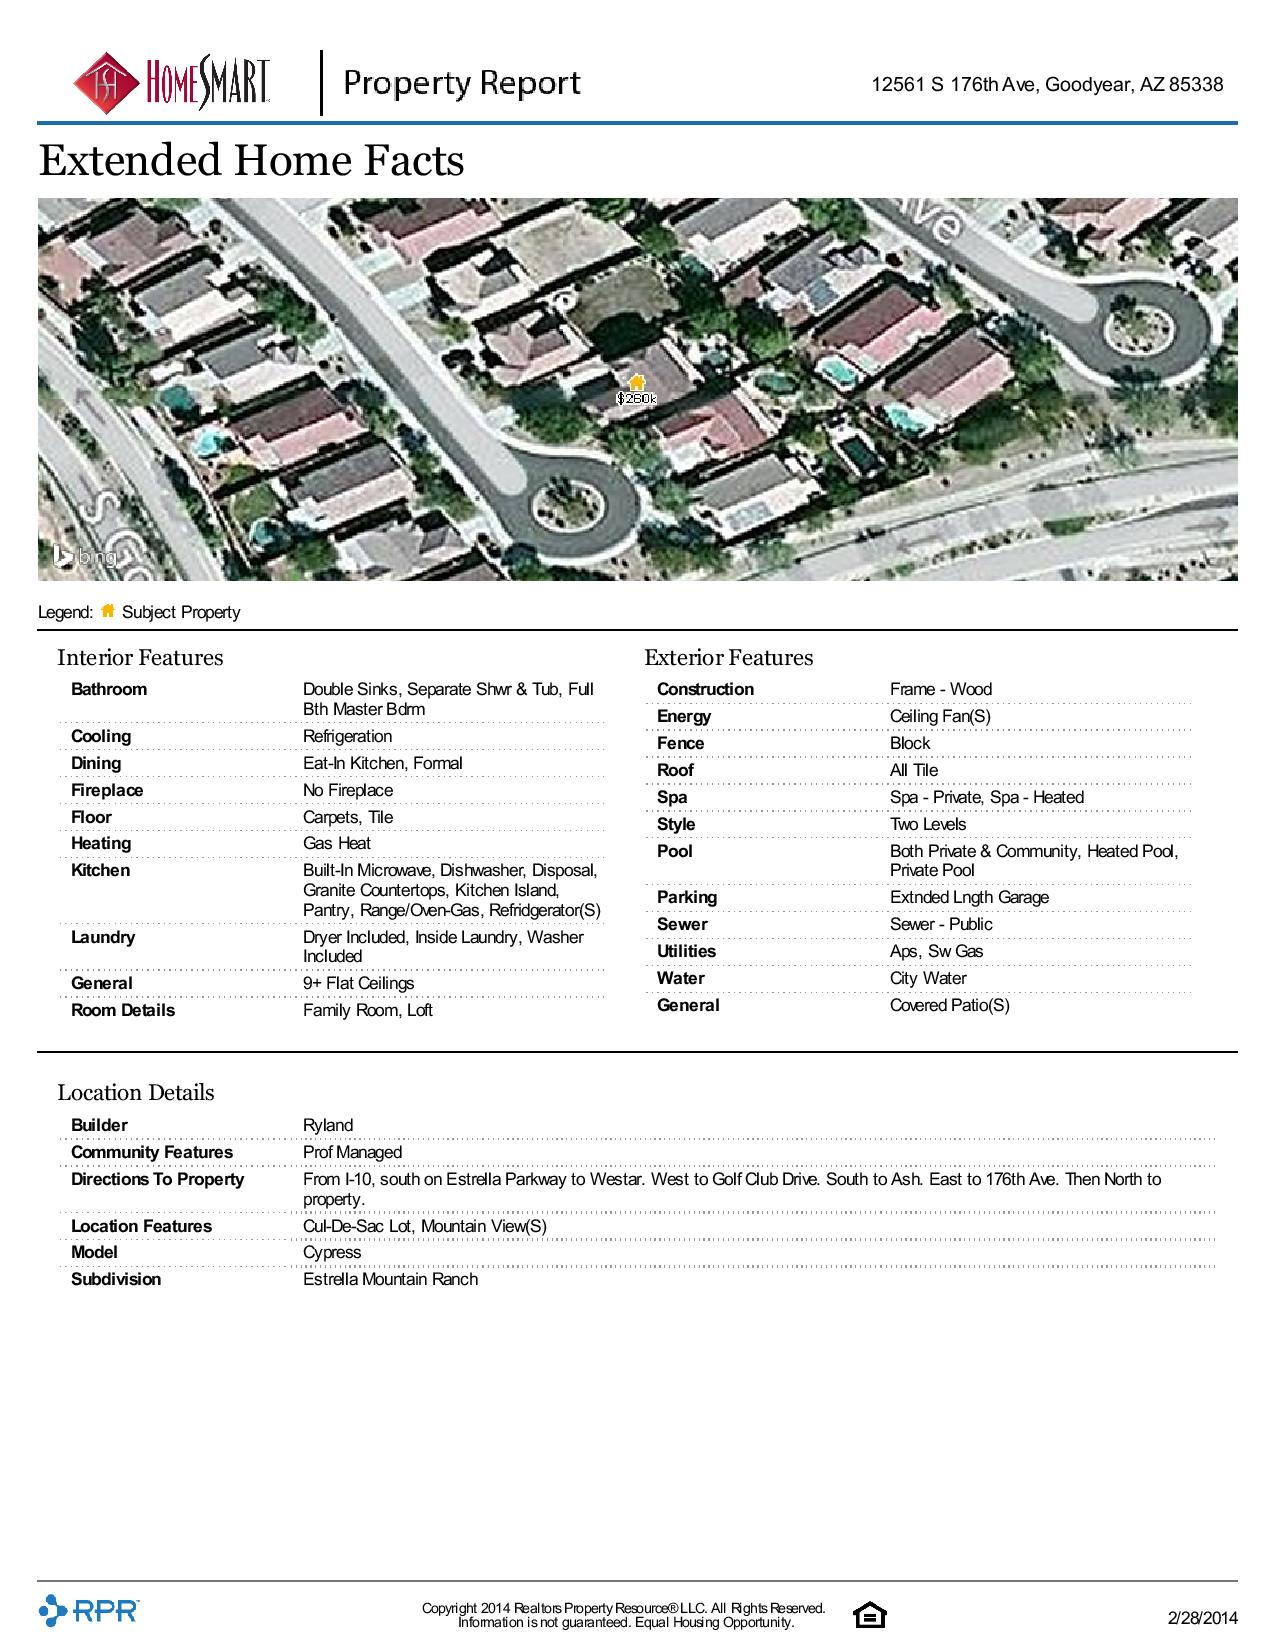 12561-S-176th-Ave-Goodyear-AZ-85338-page-004